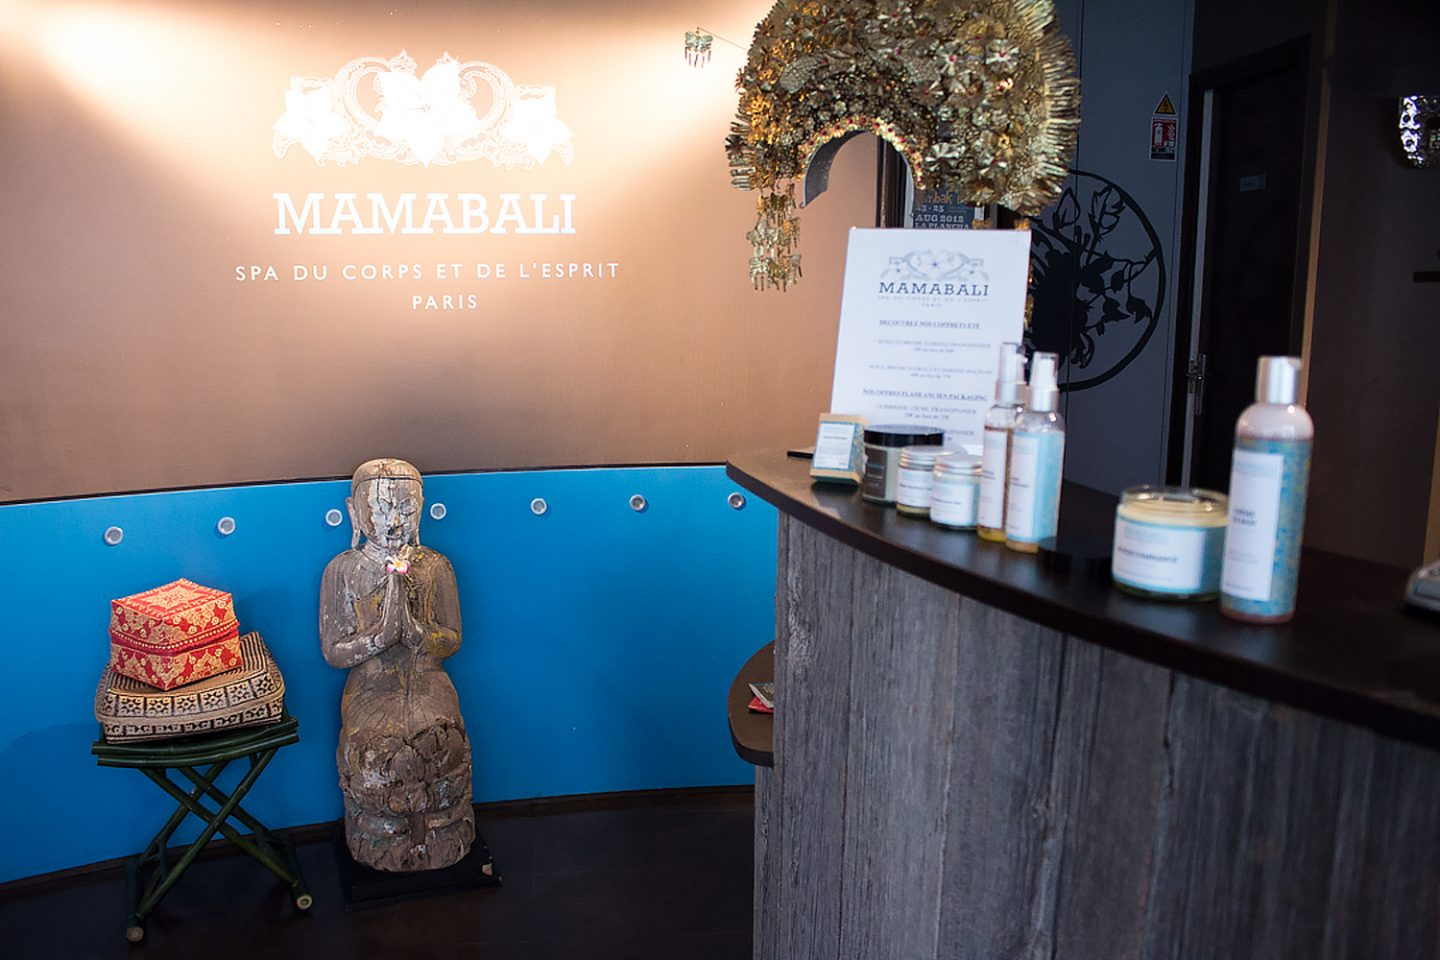 #NOEL Un Massage au Mamabali Spa